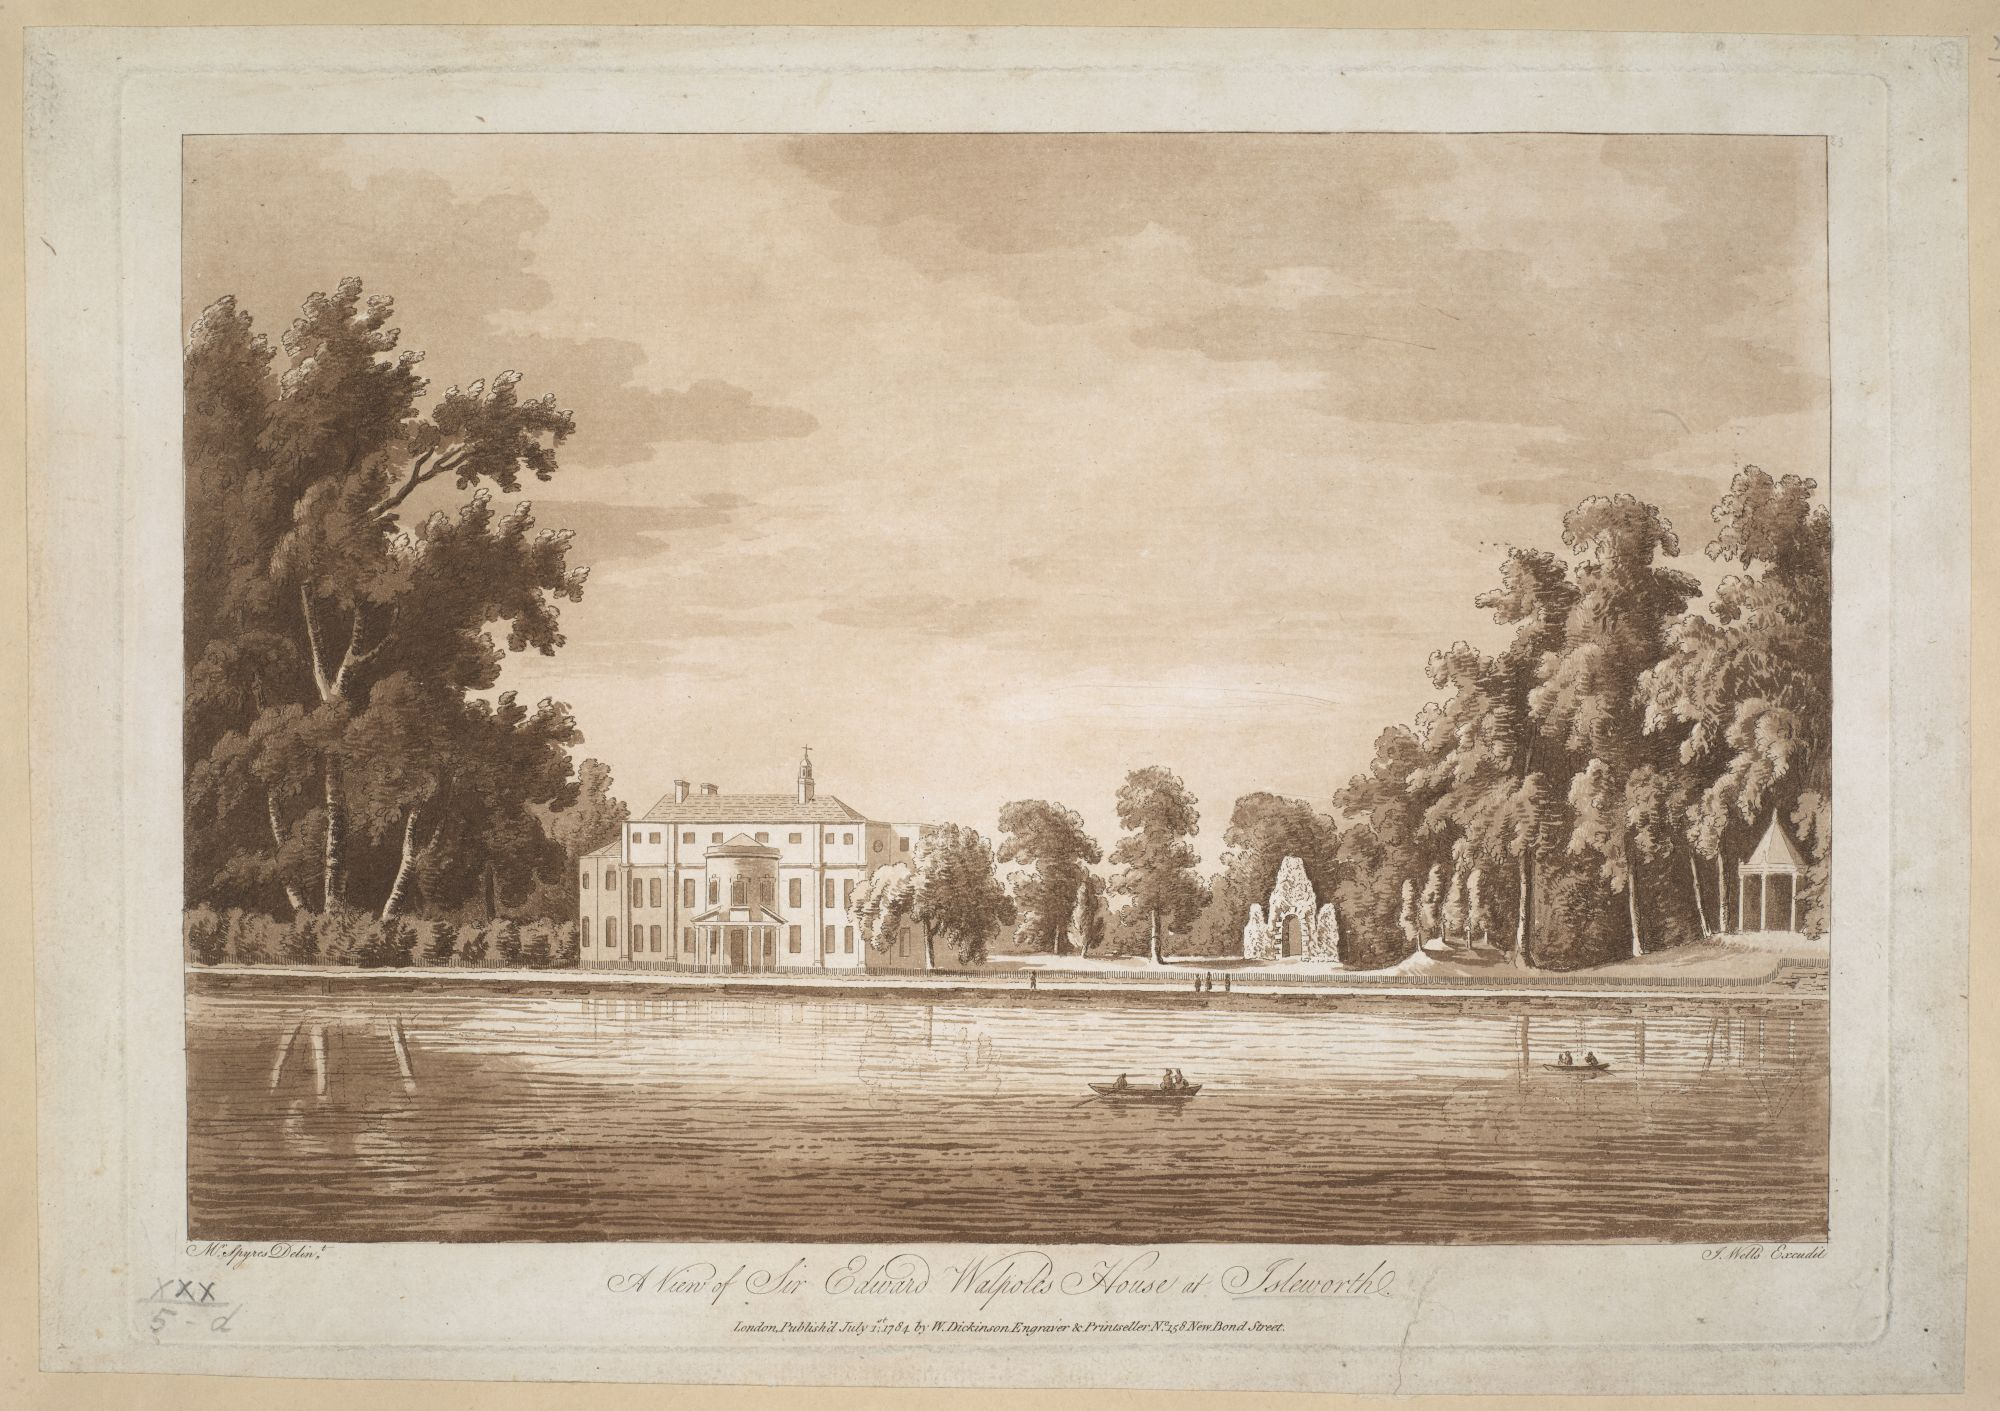 A View of Sir Edward Walpoles House at Isleworth, by John Spyers.